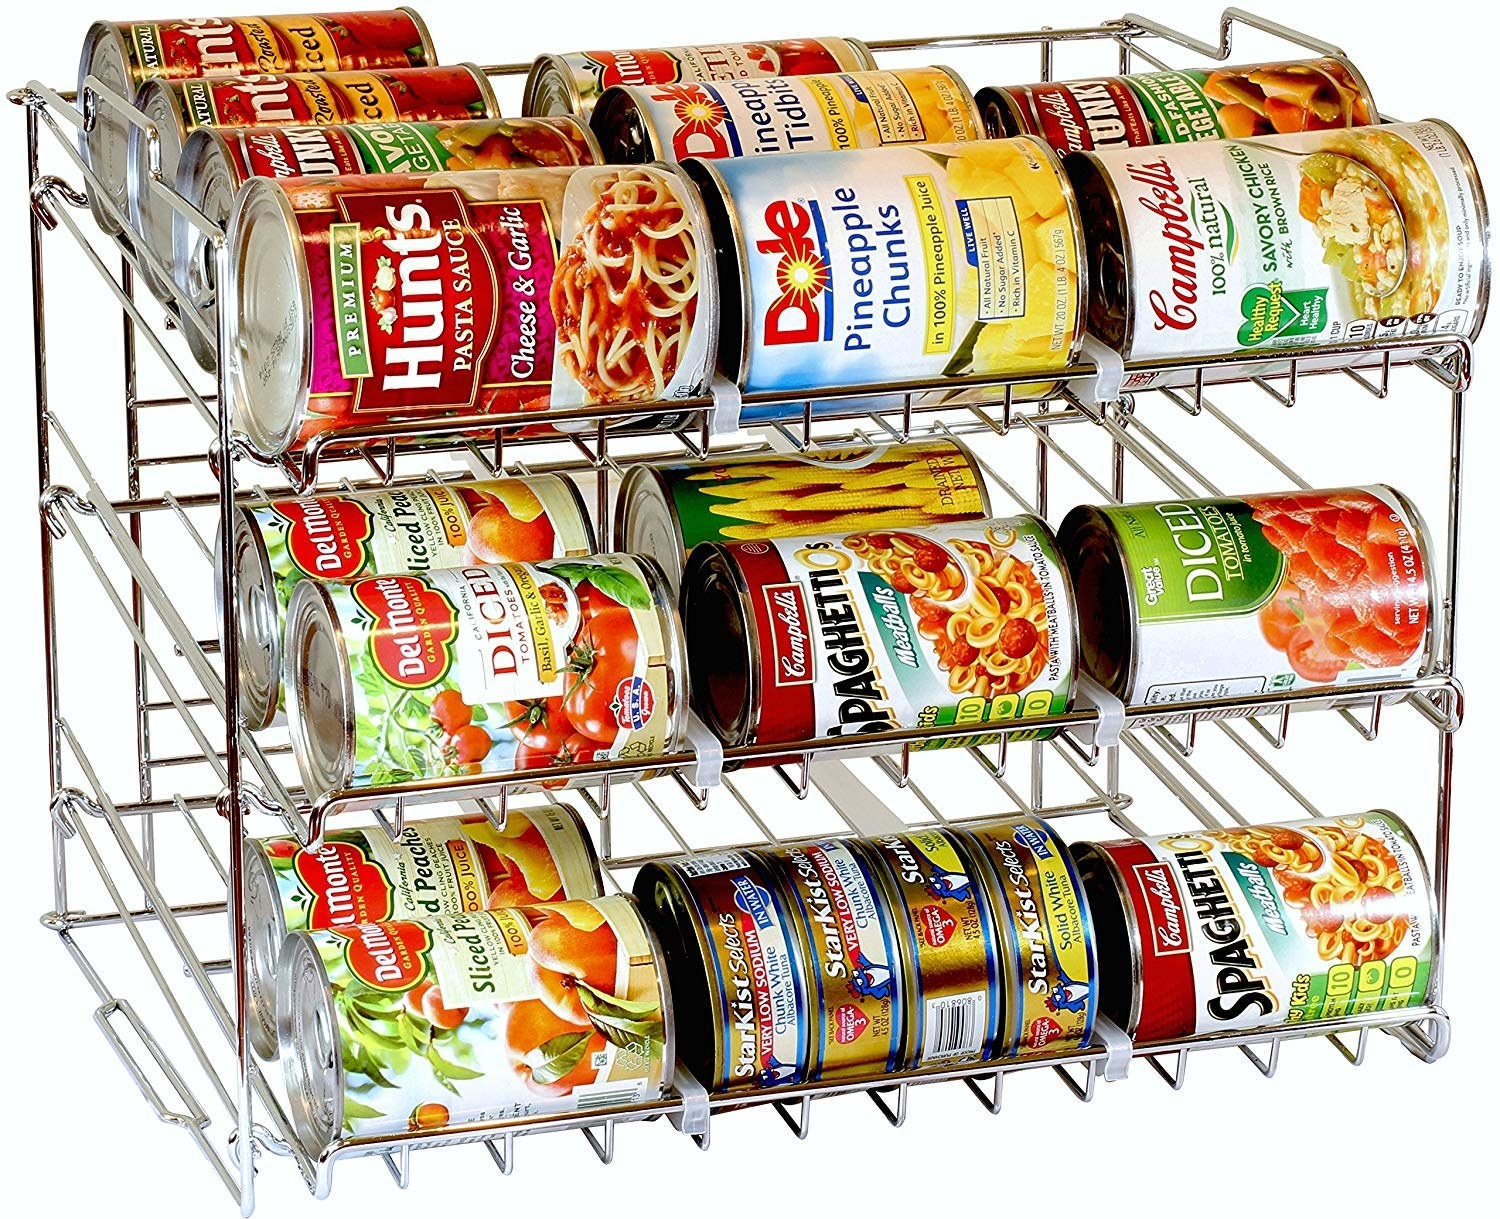 stainless steel open shelf with cans on it